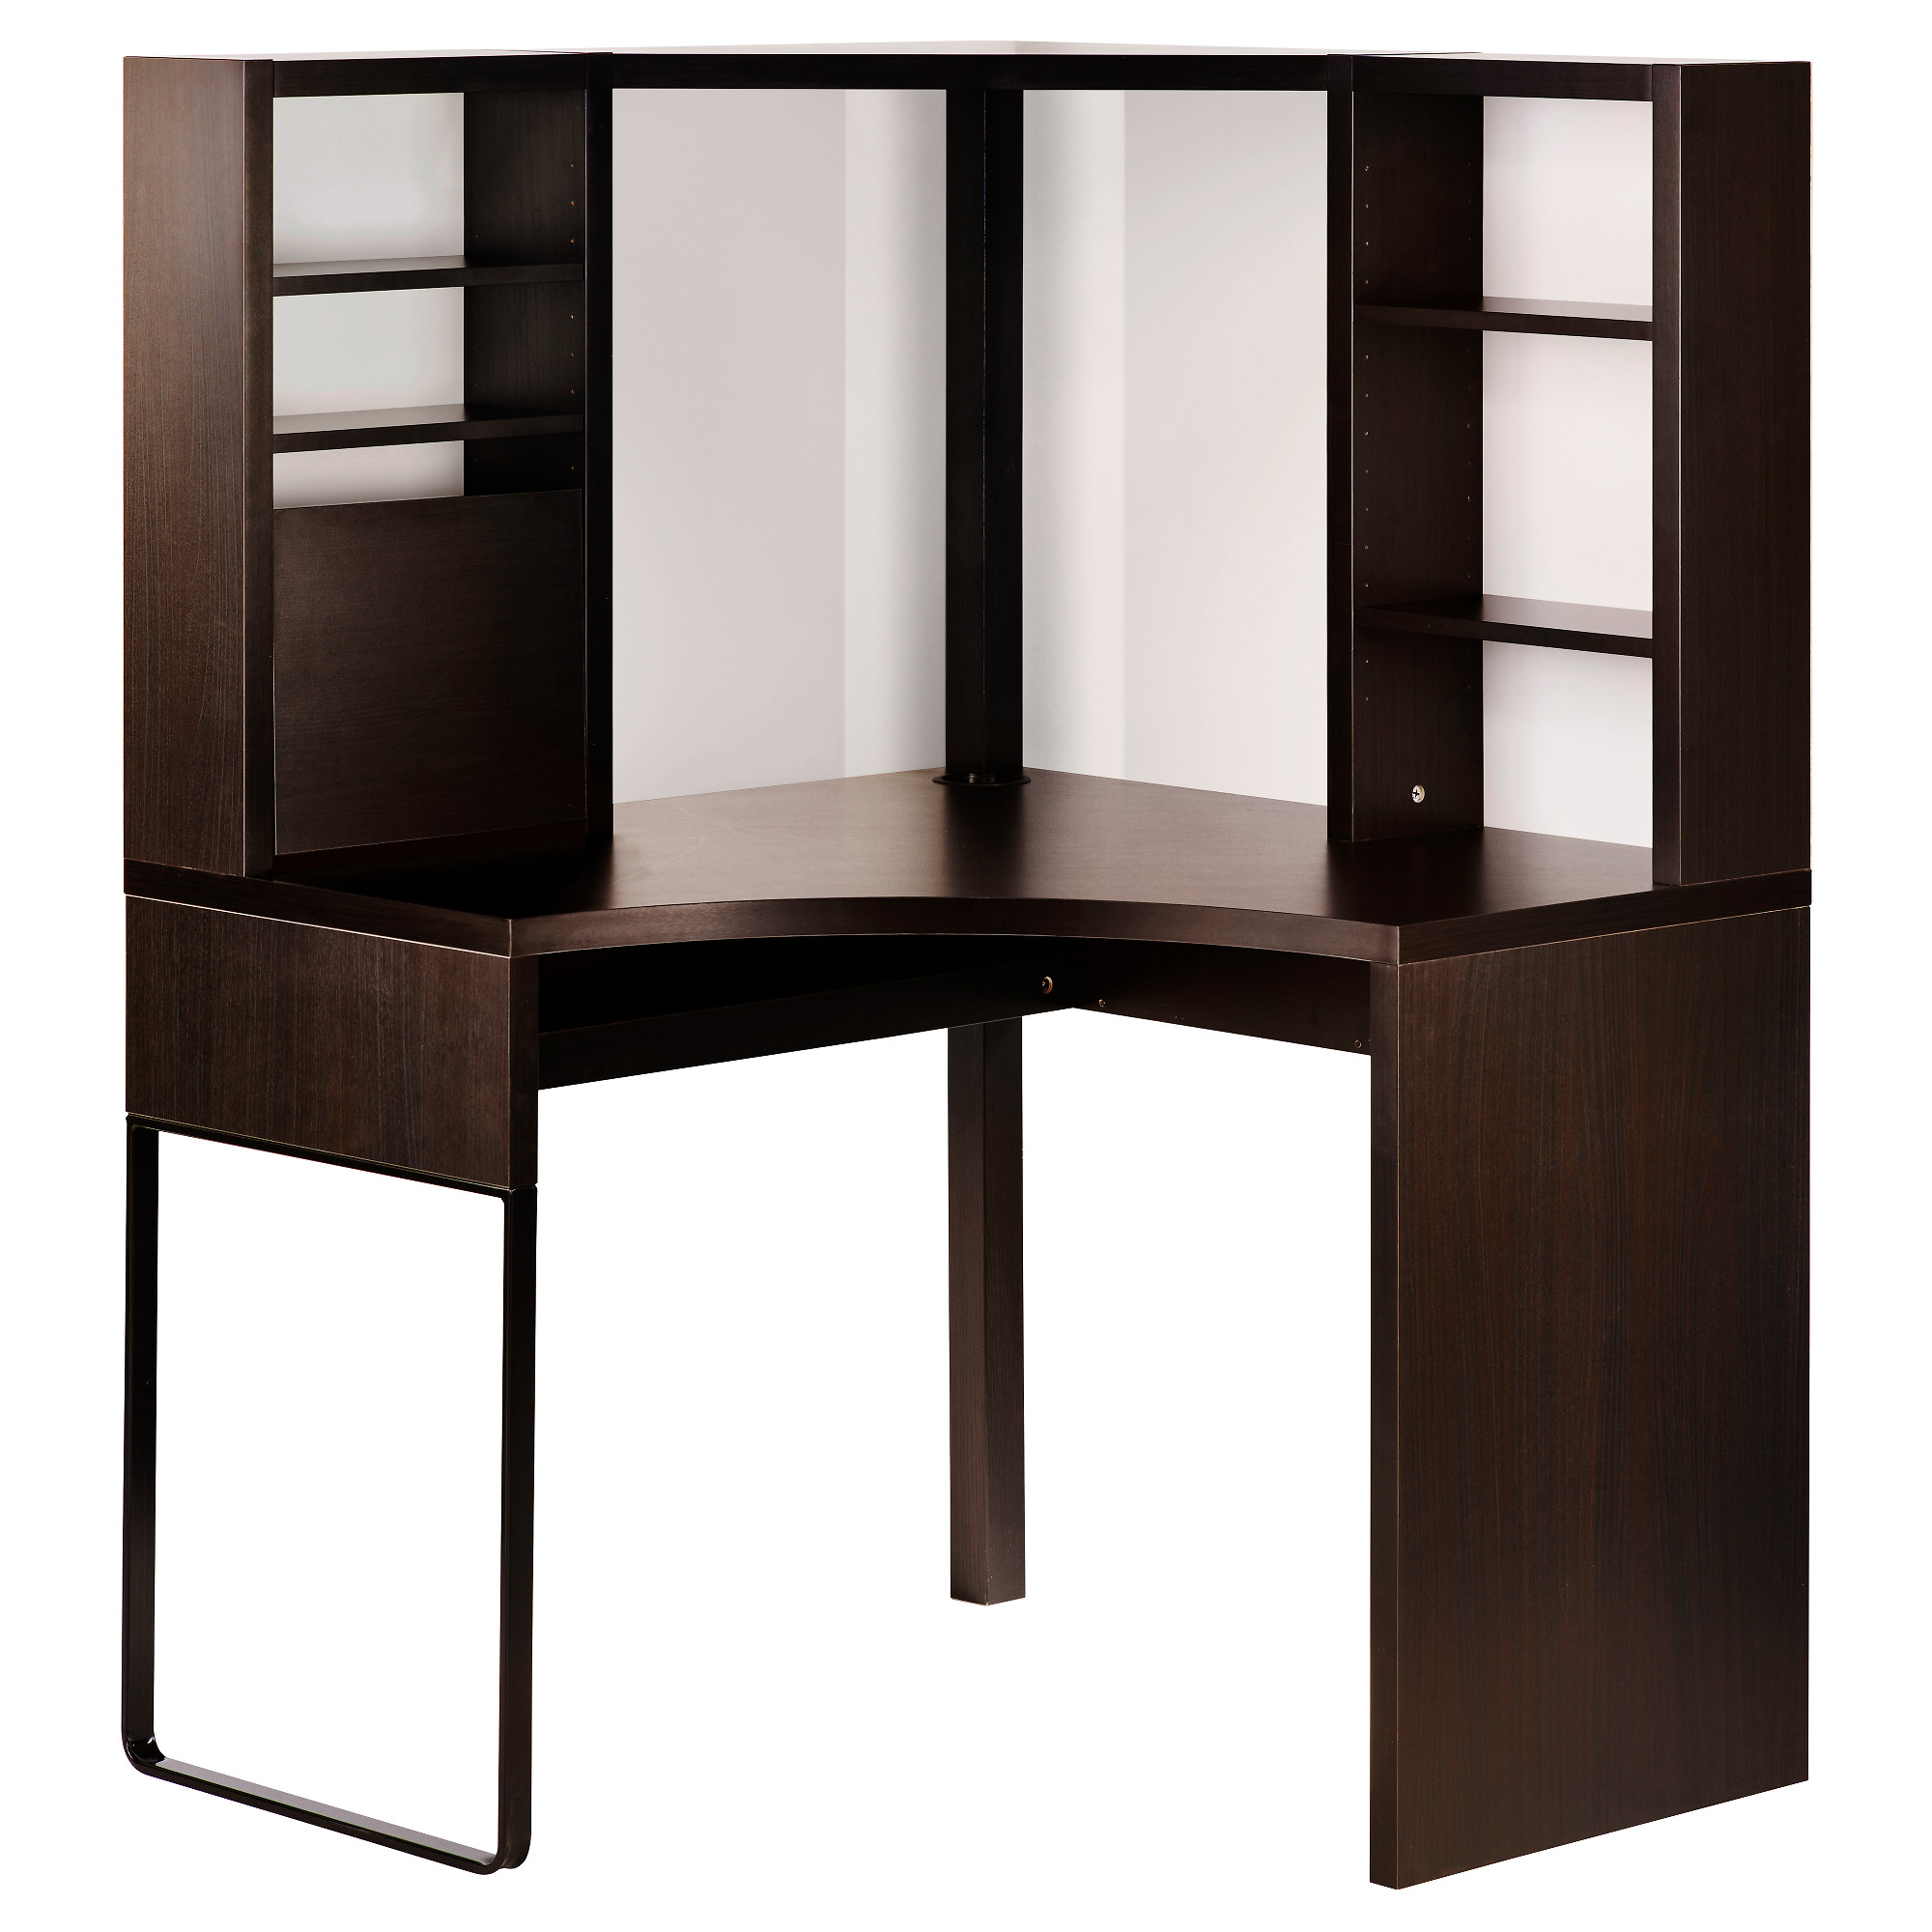 IKEA computer desk also add office furniture sets also add corner